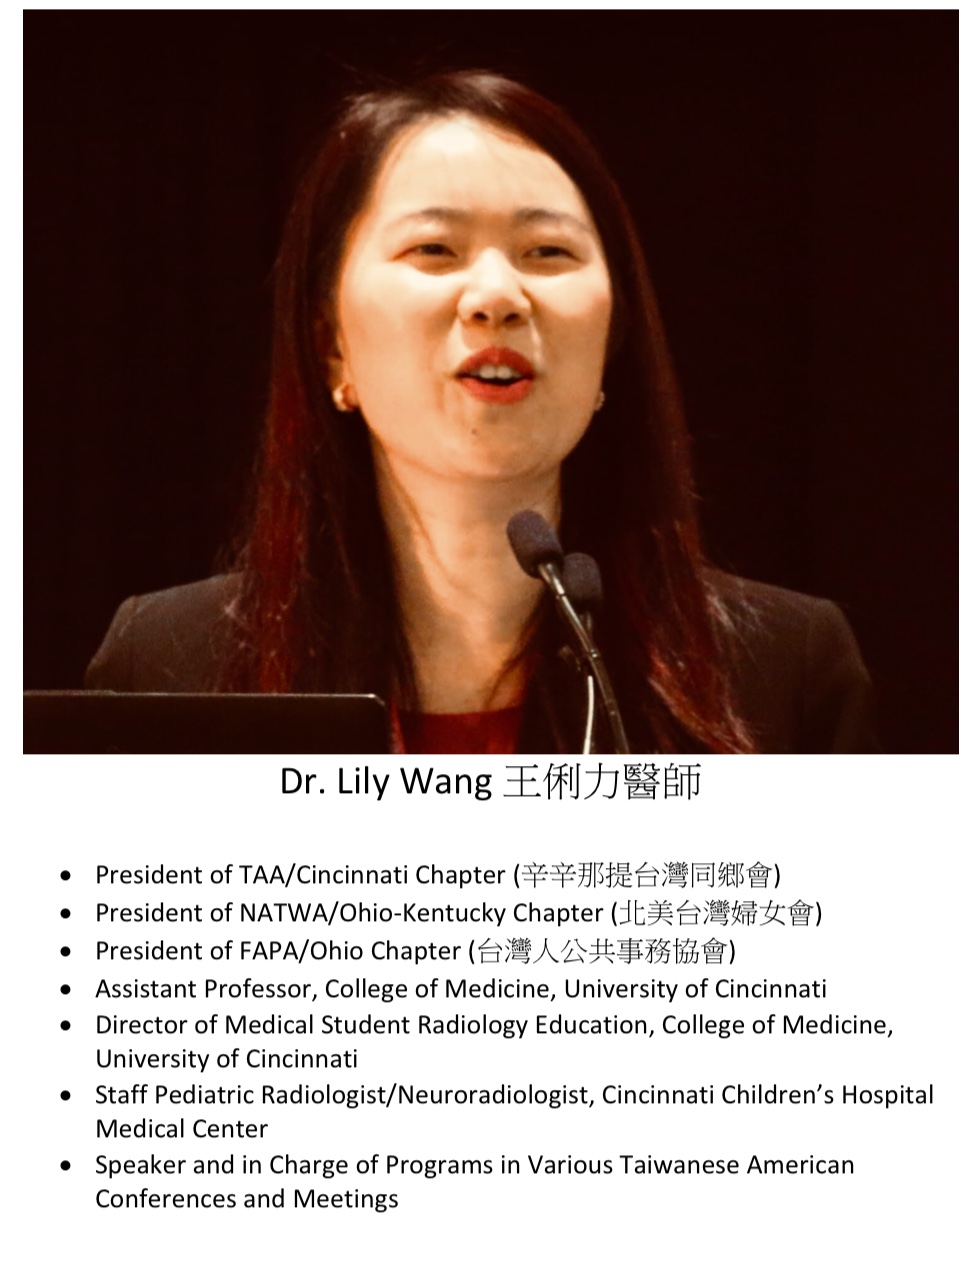 286. Dr. Lily Wang 王俐力醫師